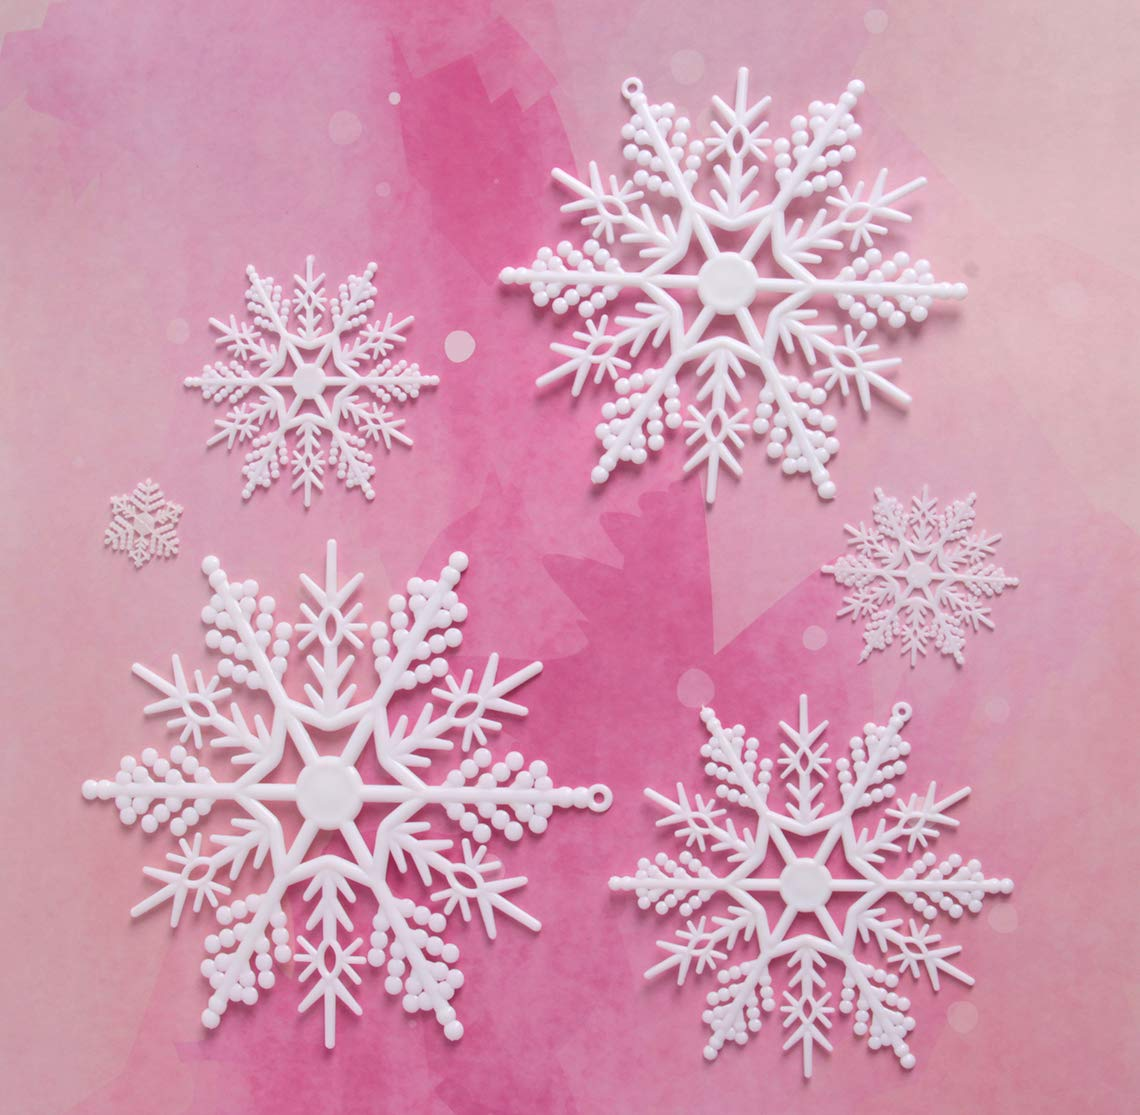 30 Counts Snowflake Party Supplies Bilipala Winter White Snowflakes Decorations Ornaments